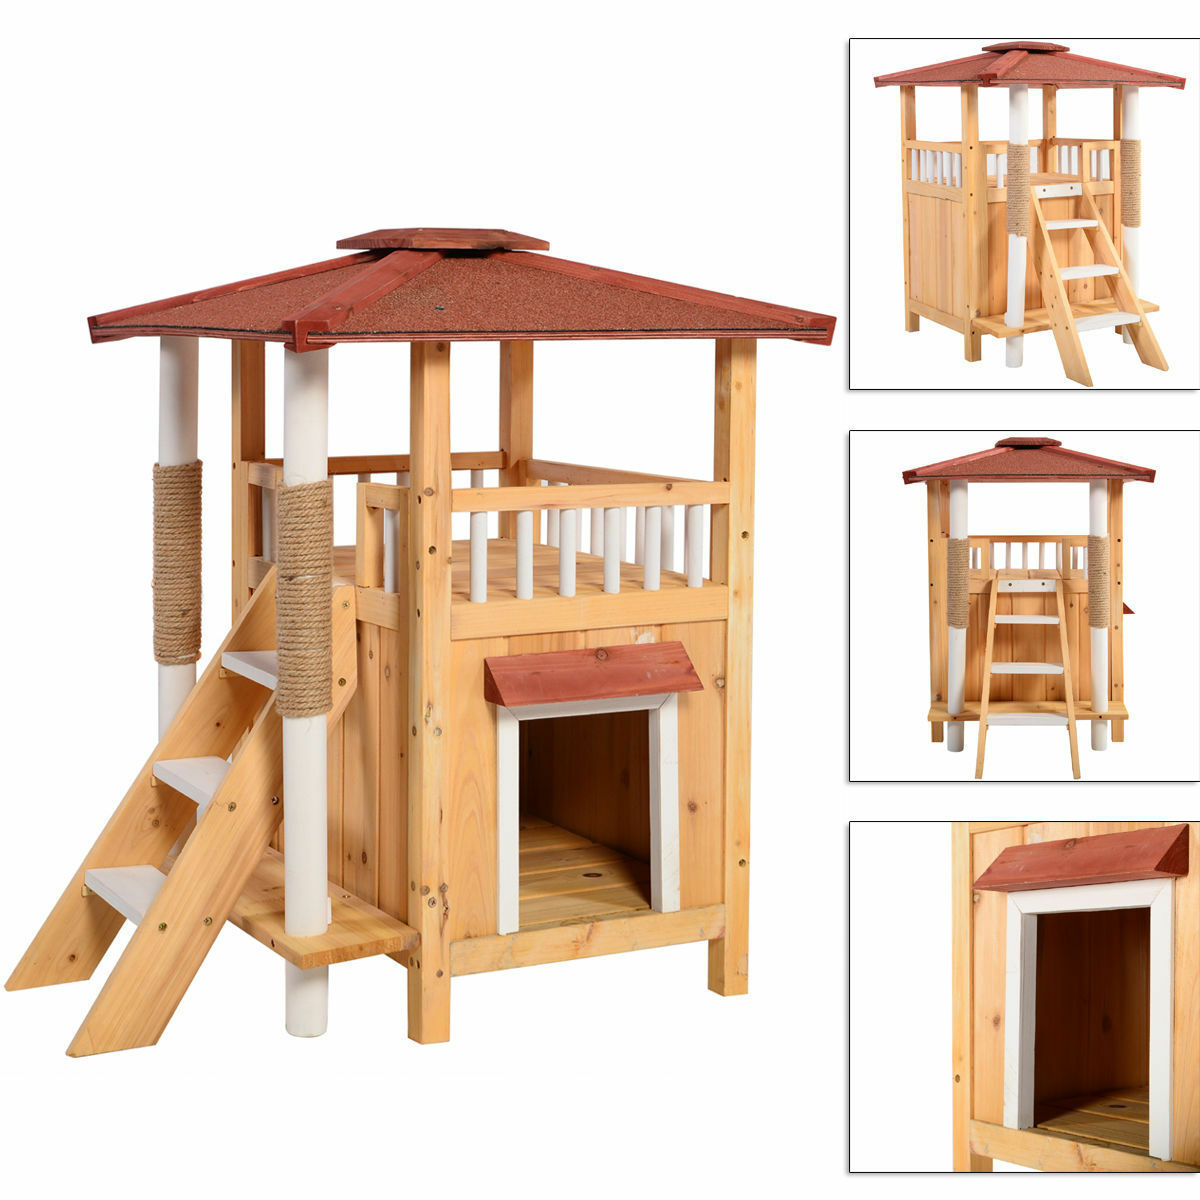 cat house pet shelter roof condo wood steps balcony puppy